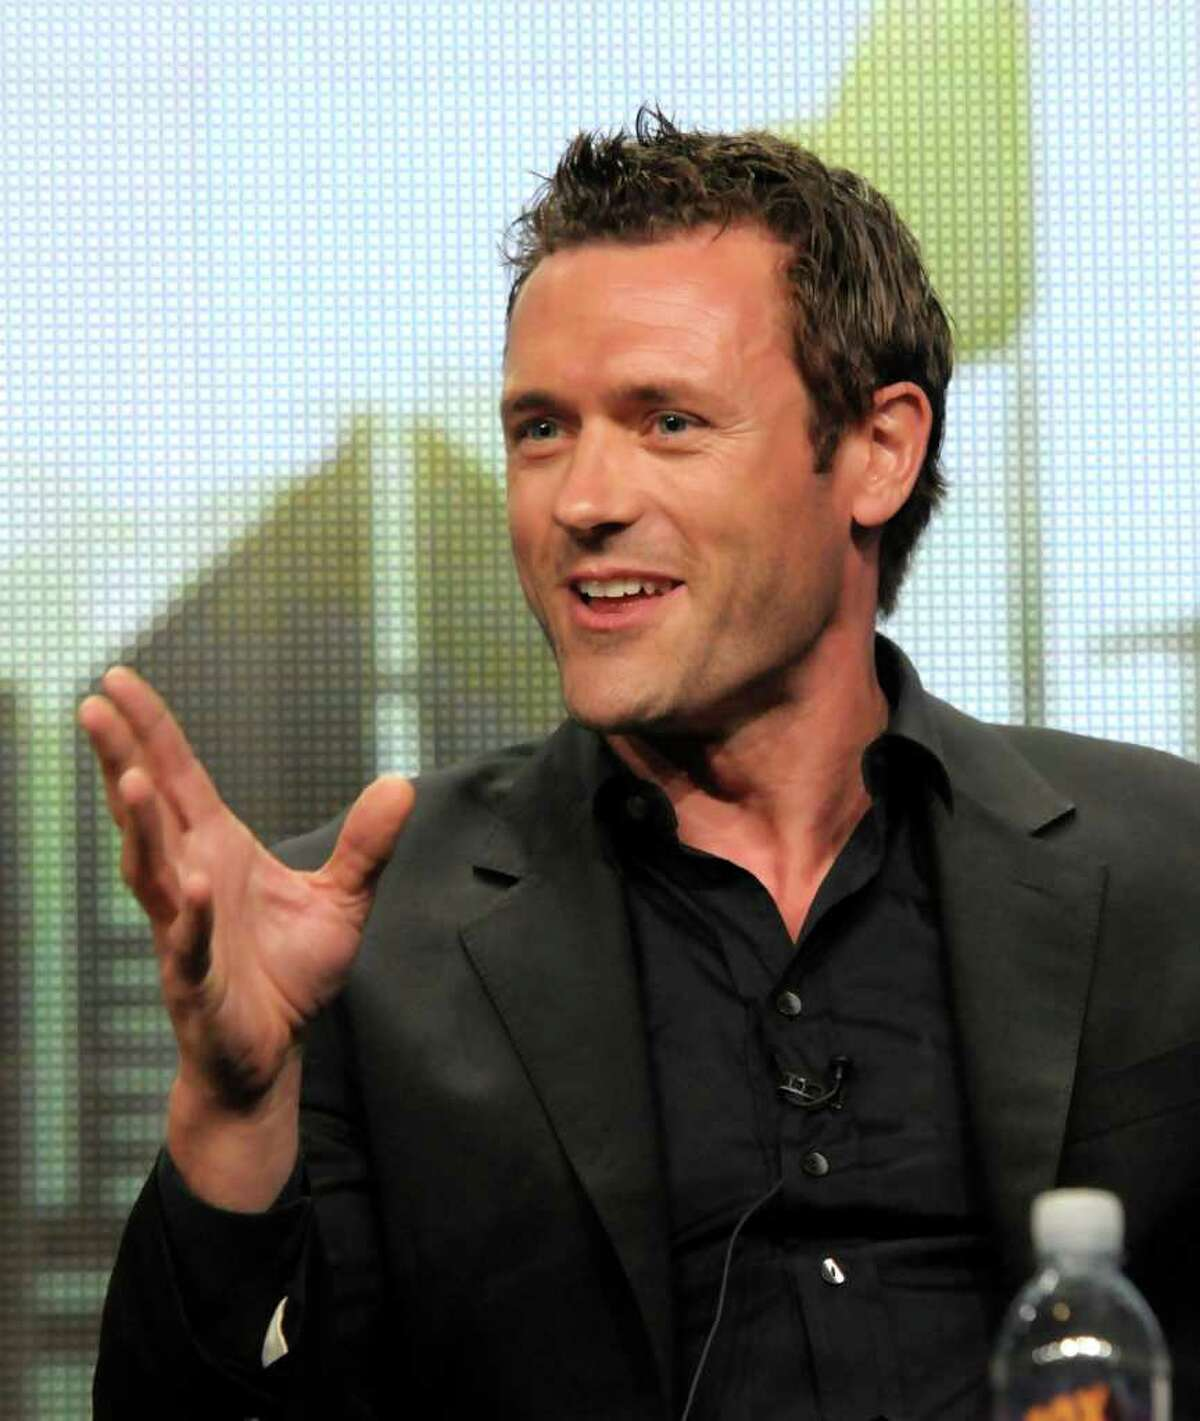 Actor Jason O'Mara speaks during a panel at the The Television Critics Association 2011 Summer Press Tour in Beverly Hills, Calif. on Friday, Aug. 5, 2011. O'Mara stars in the television series